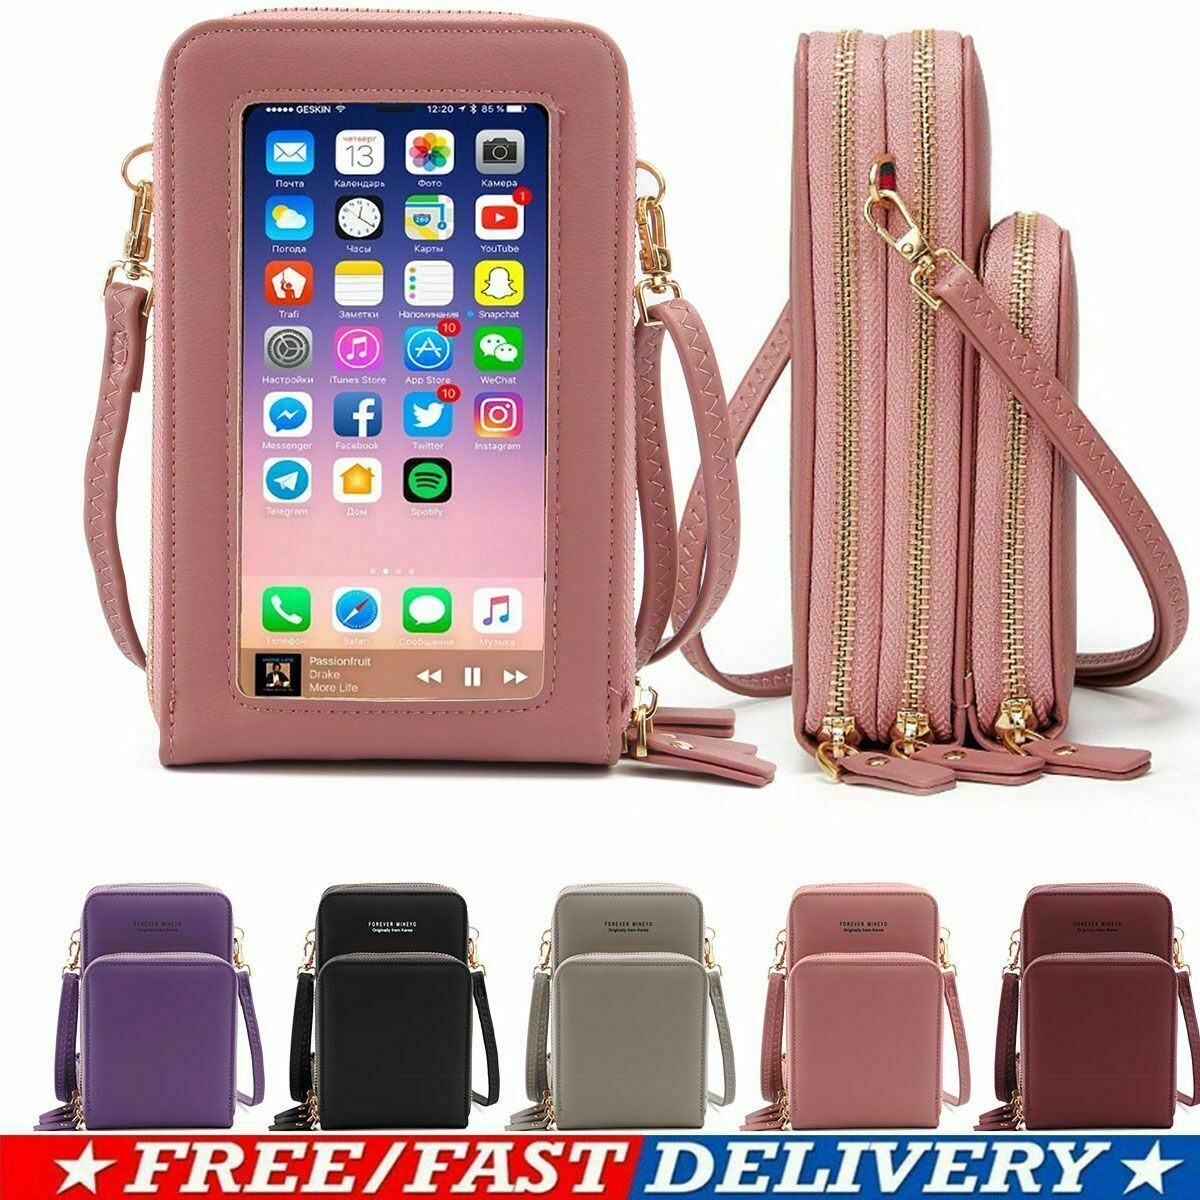 Women Crossbody Cellphone Purse Touch Screen RFID Blocking Wallet Shoulder Bag Clothing, Shoes & Accessories